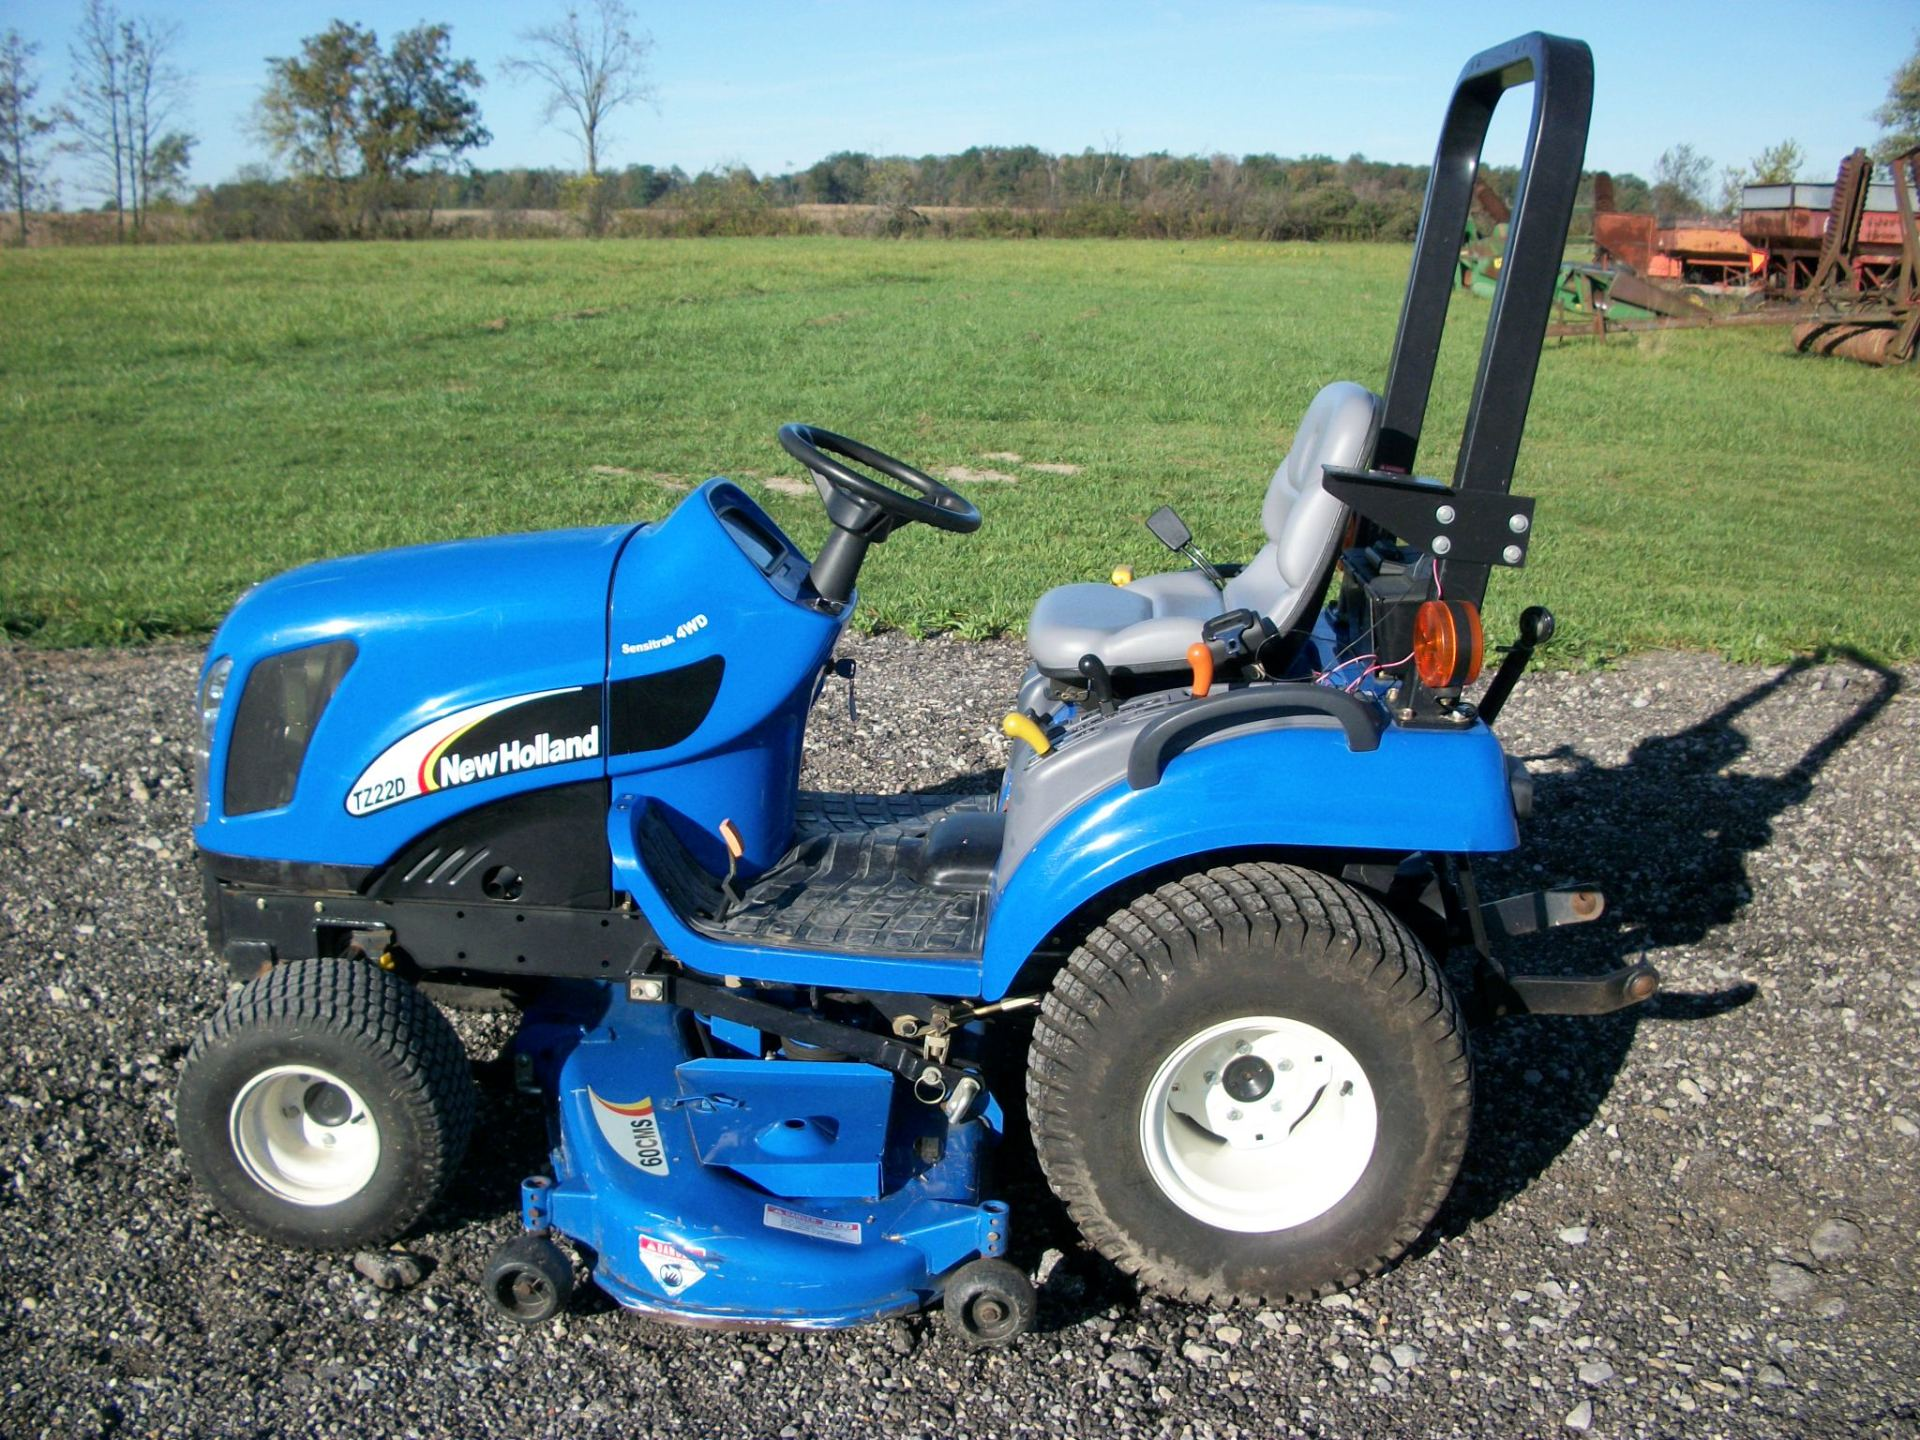 New Holland TZ22DA    $6,500